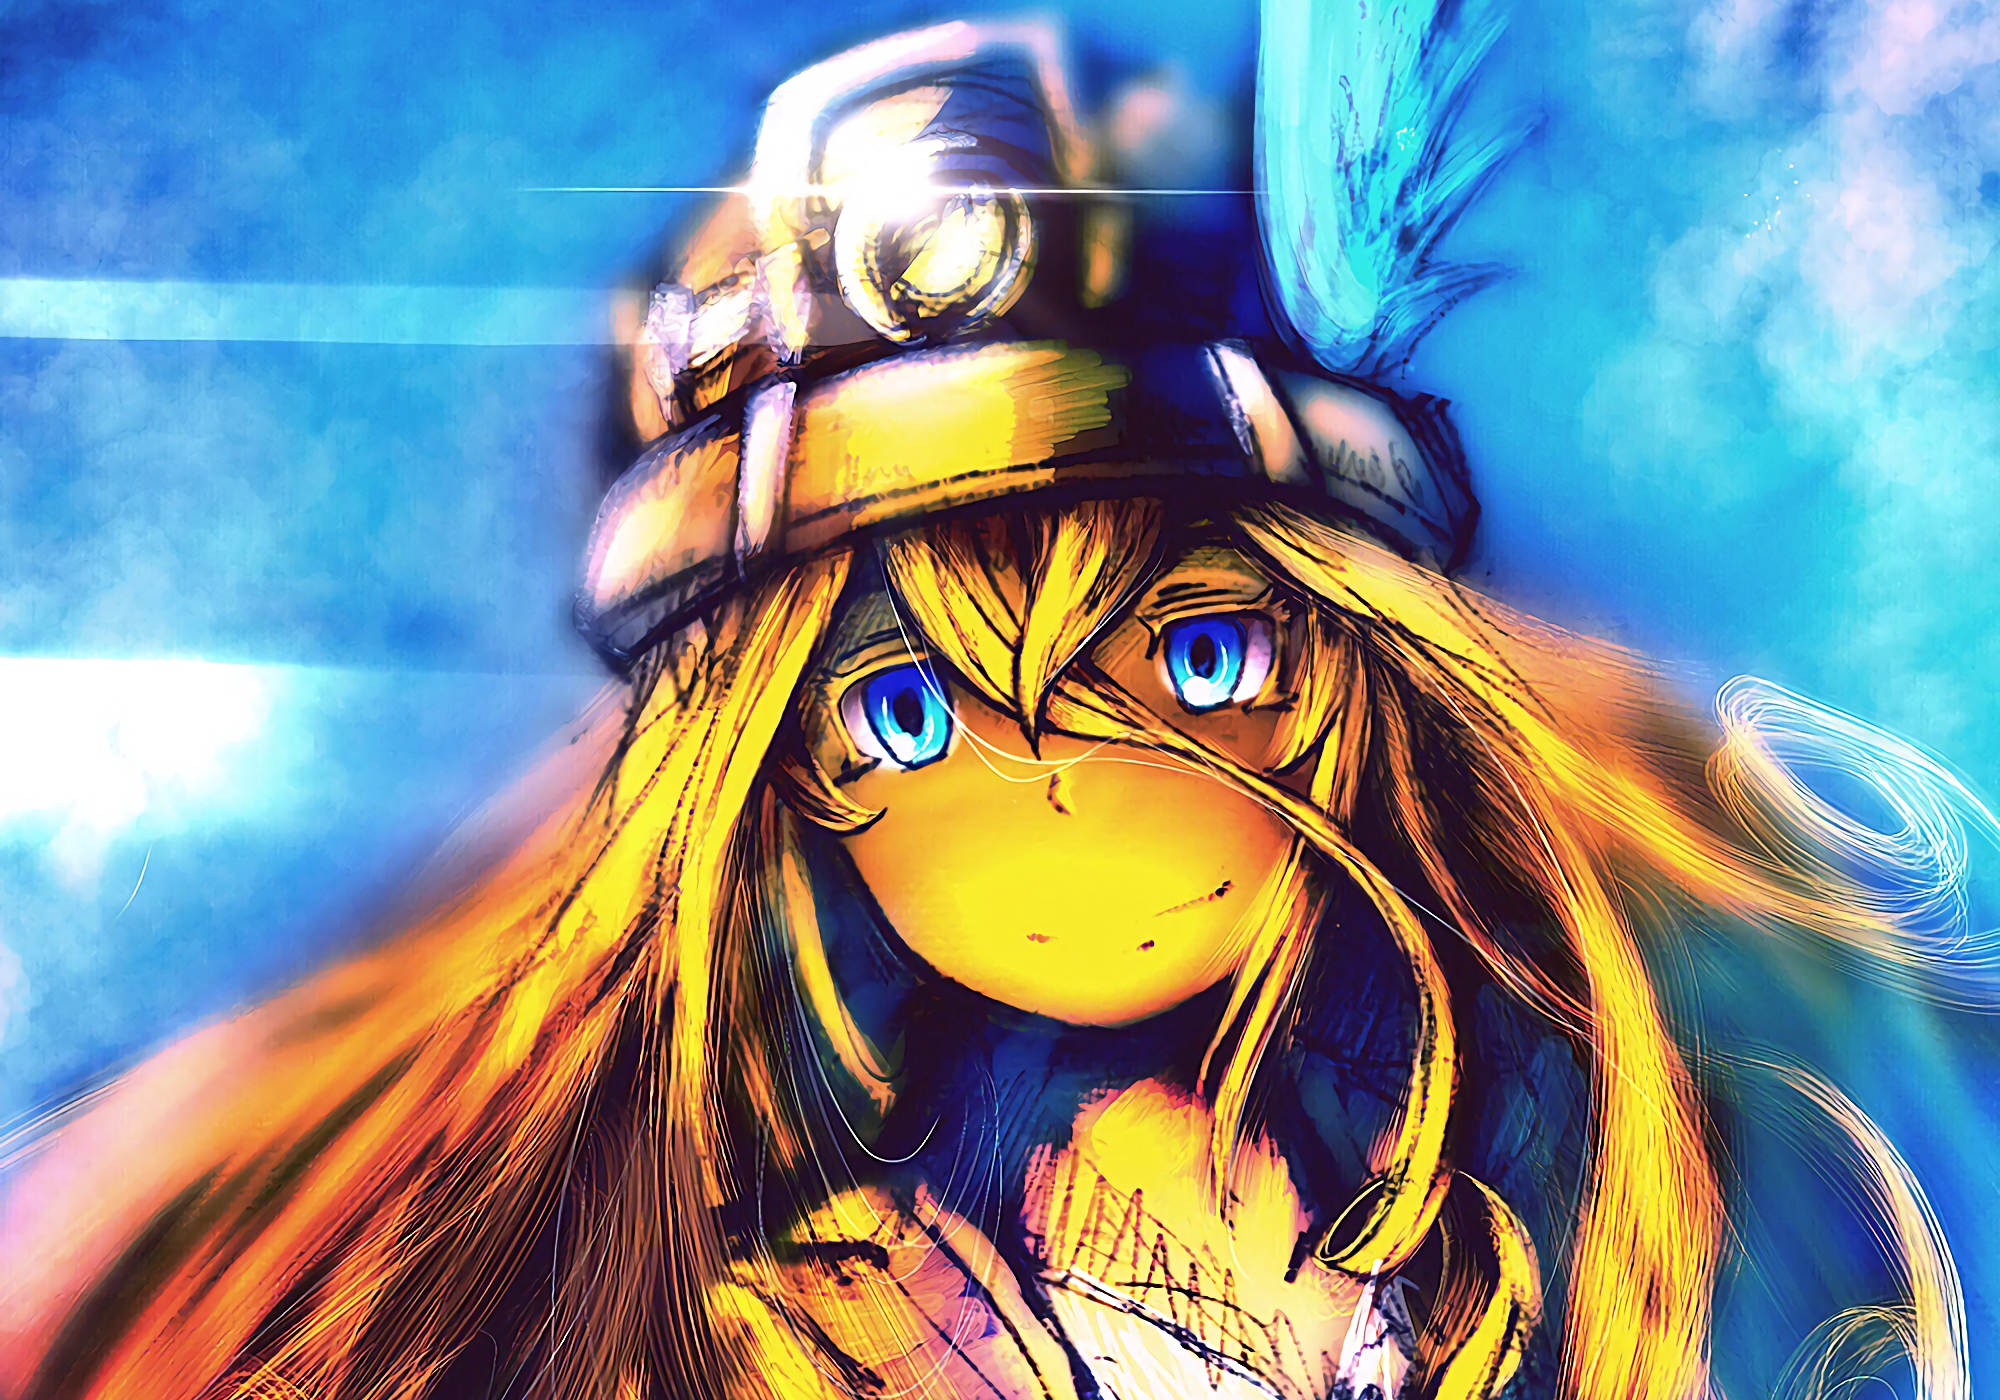 Anime Made In Abyss Regu (Made in Abyss) Fondo de Pantalla